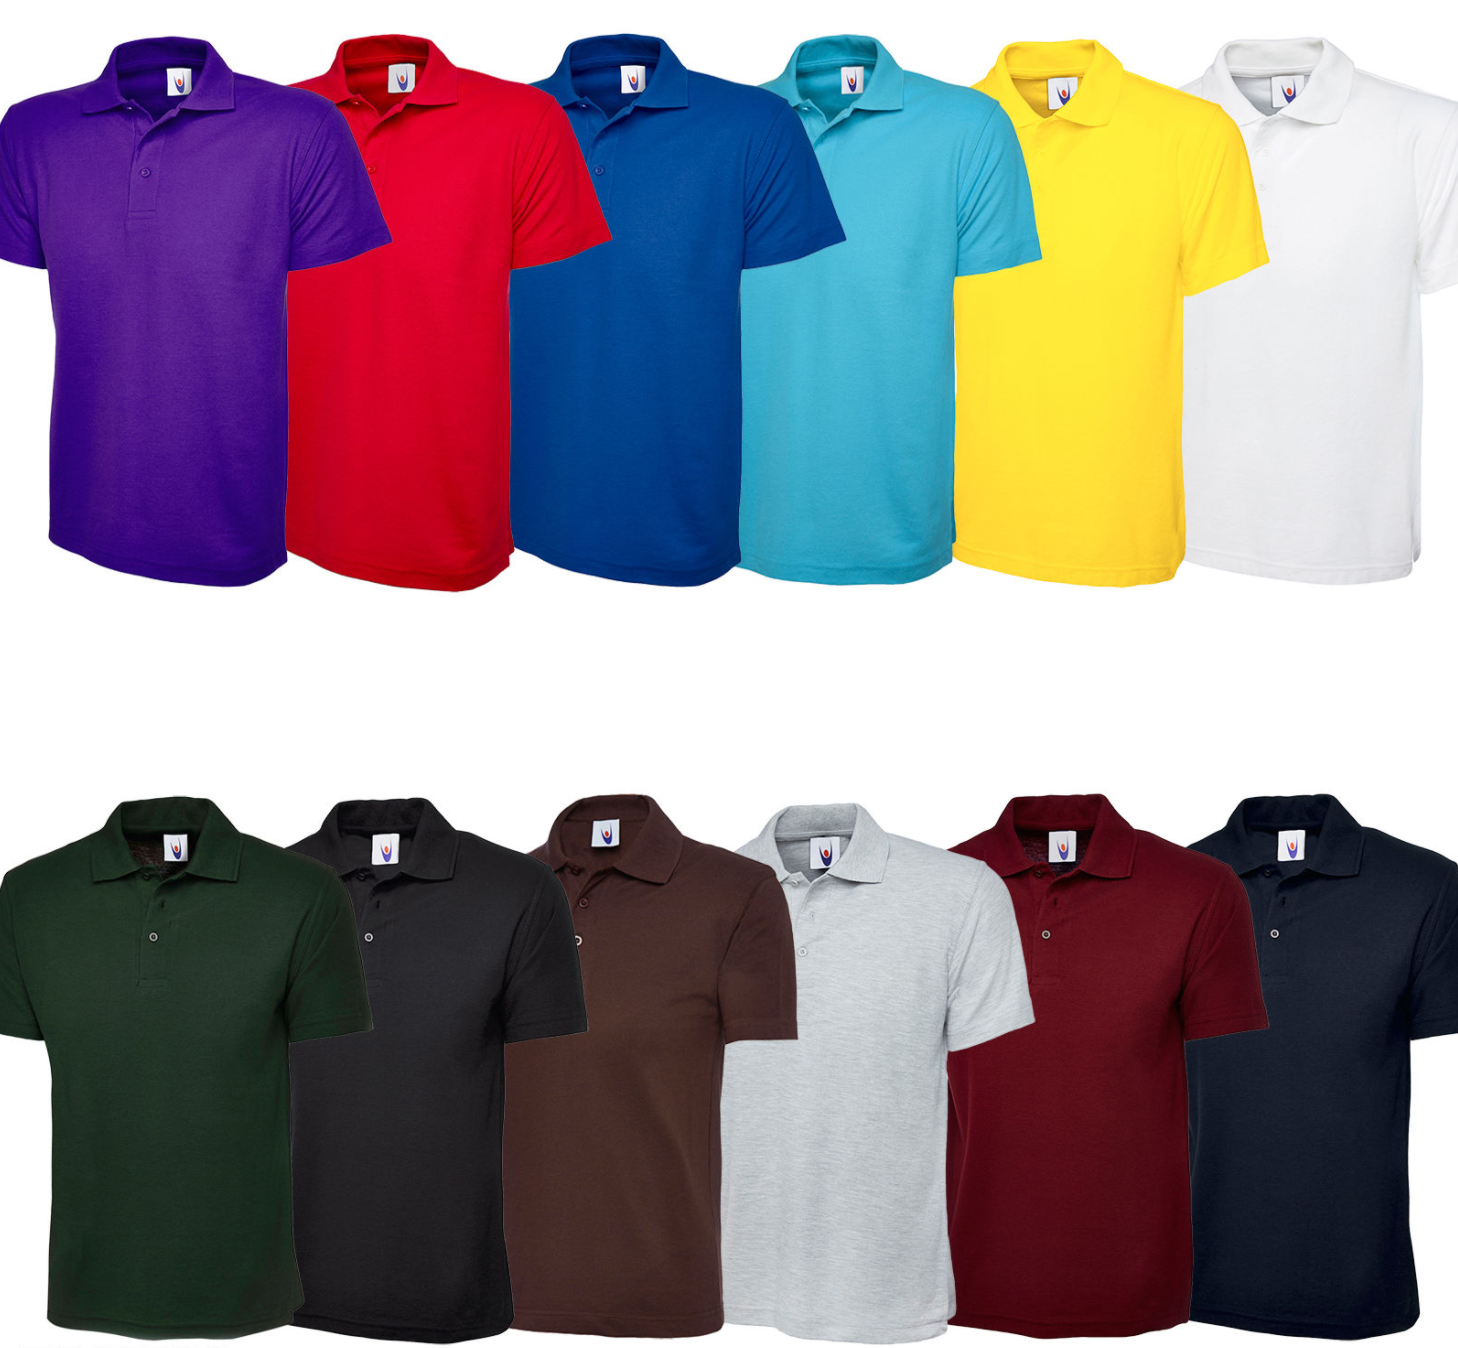 4602f751 1 of 2 Uneek Kids Polo Shirt Children's School Top PE Collared Poloshirt  Boys Girls TEE 2 of 2 See More